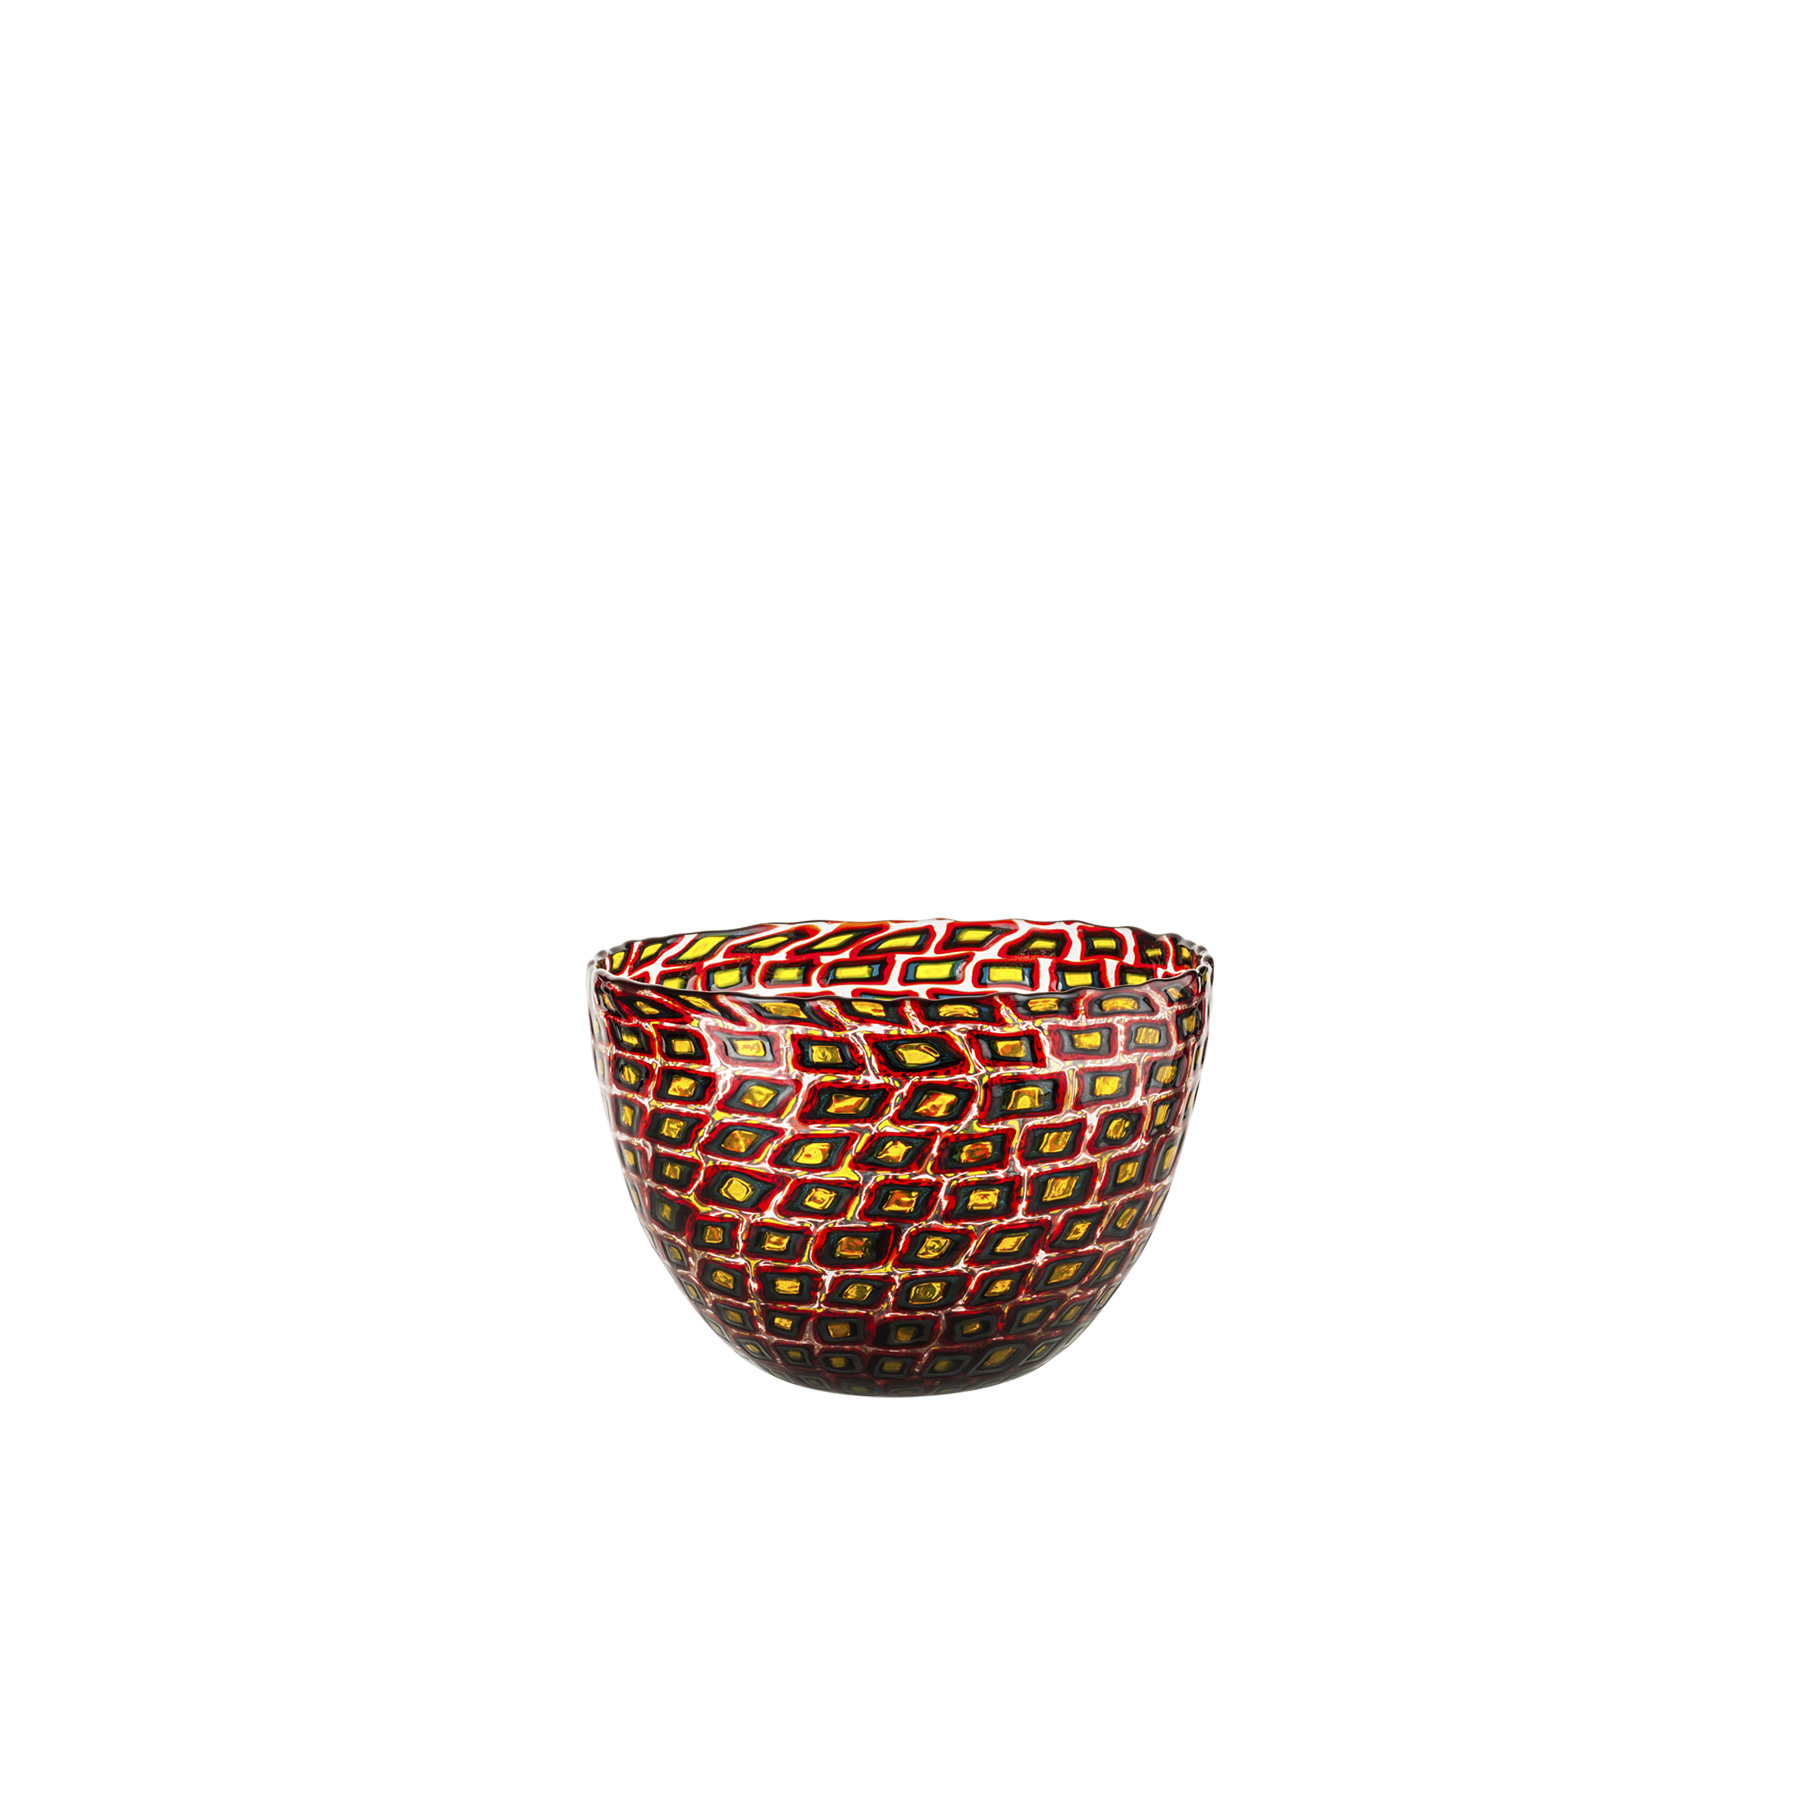 "Murrine Romane - The colour arrangement creates unique effects evoking a dreamlike world that was once the reality. The shades of red, green and yellow of the frescoes that once adorned Ancient Roman residences and palaces turned into glass in 1940. Yellow dots are enclosed in concentric black and red frames floating on a clear background. The generous bowl shape is enlivened with graphic and chromatic effects obtained with the ""murrine"" technique. In the form of a unique glass vase and a bowl by Carlo Scarpa.